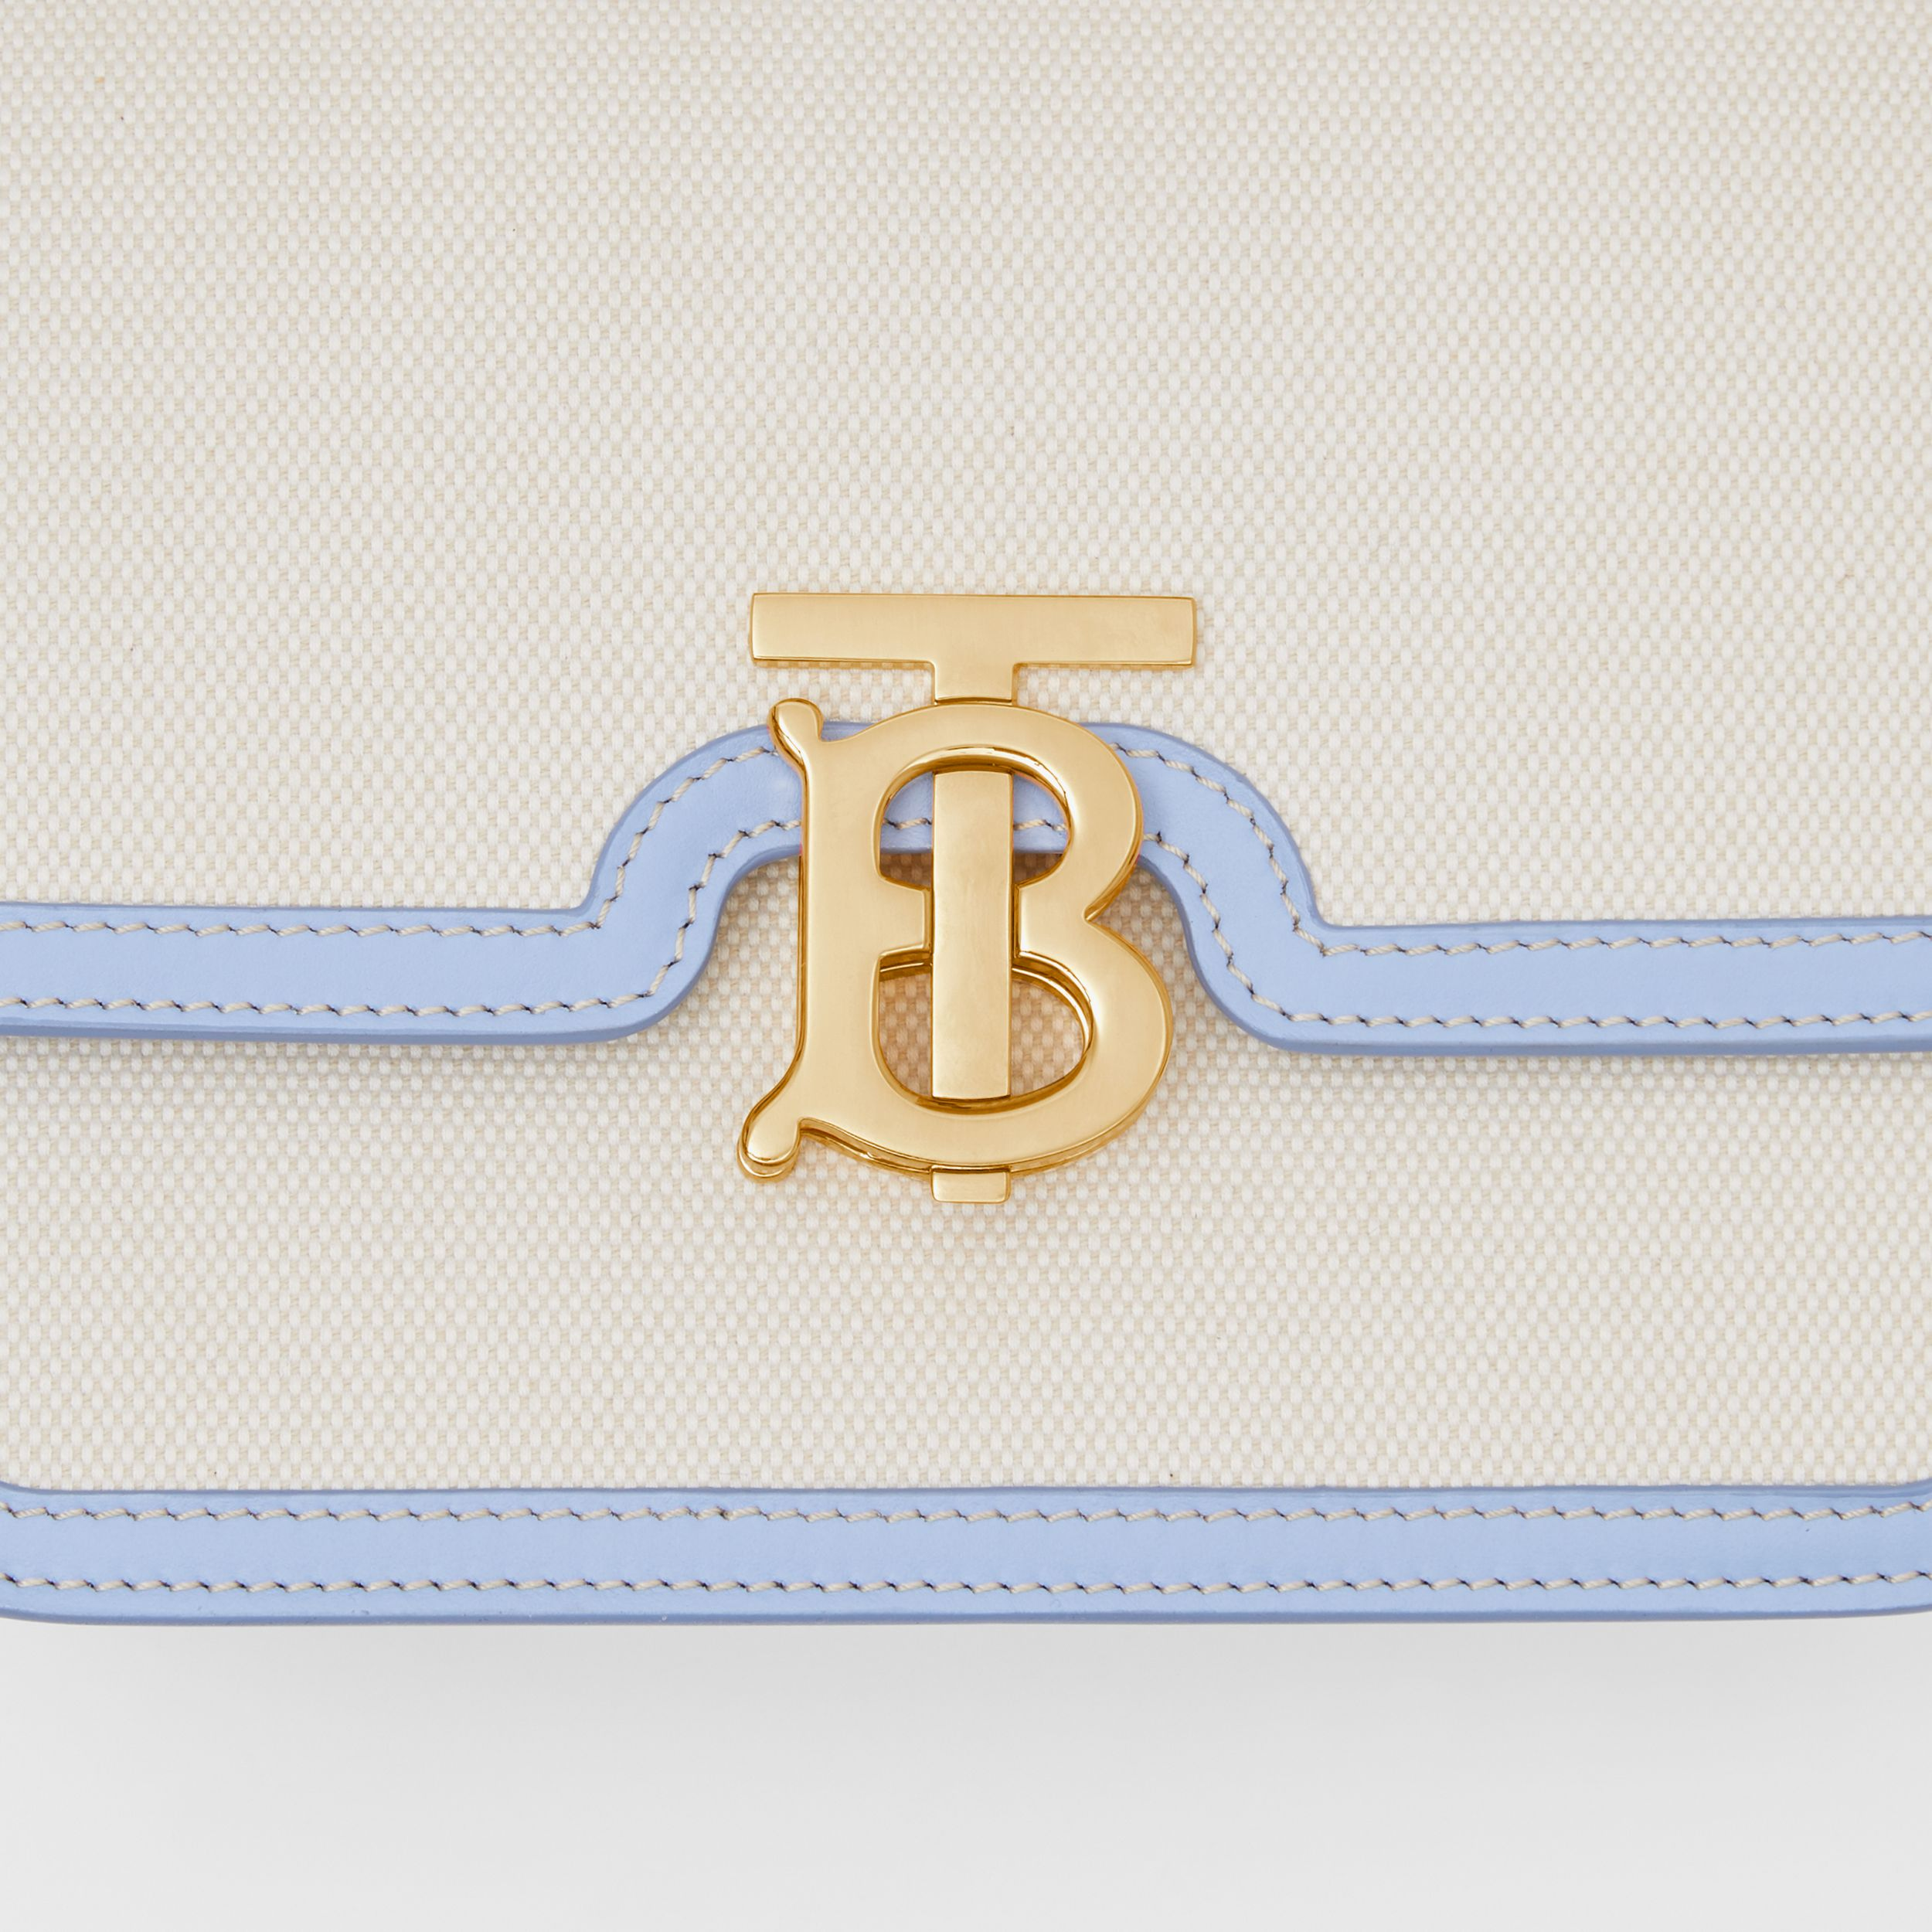 Small Two-tone Canvas and Leather TB Bag in Natural/pale Blue | Burberry - 2